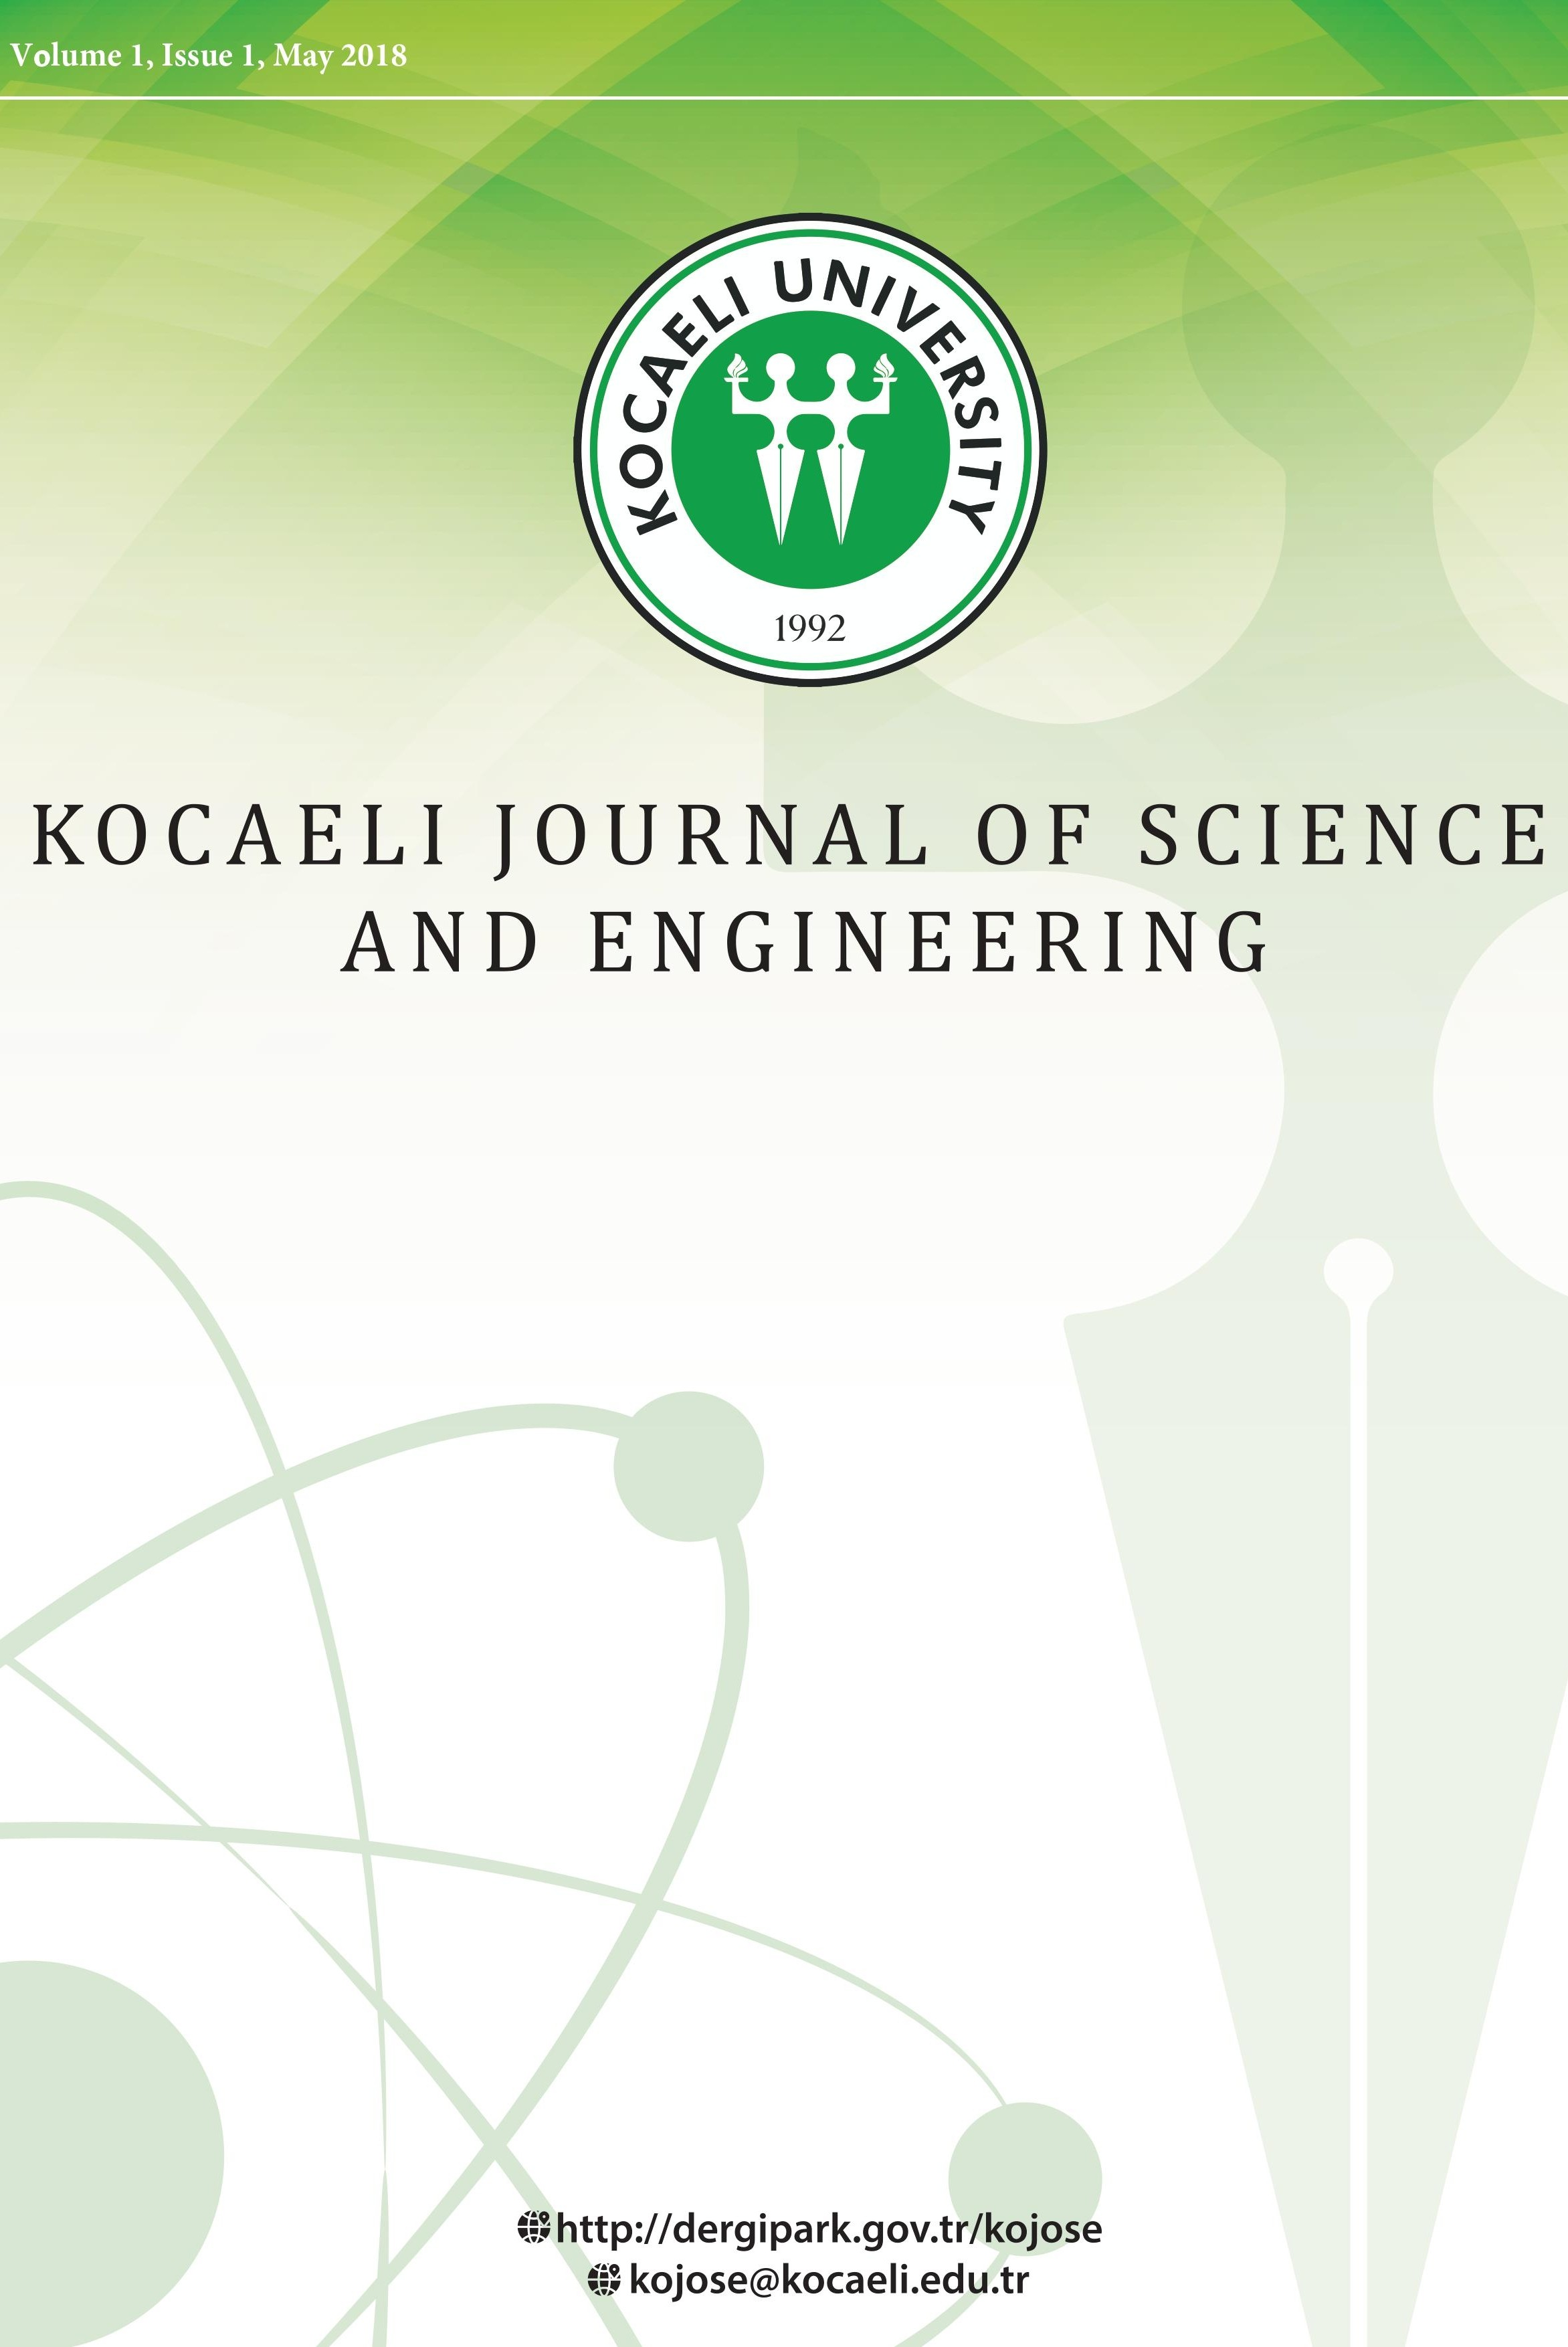 Kocaeli Journal of Science and Engineering